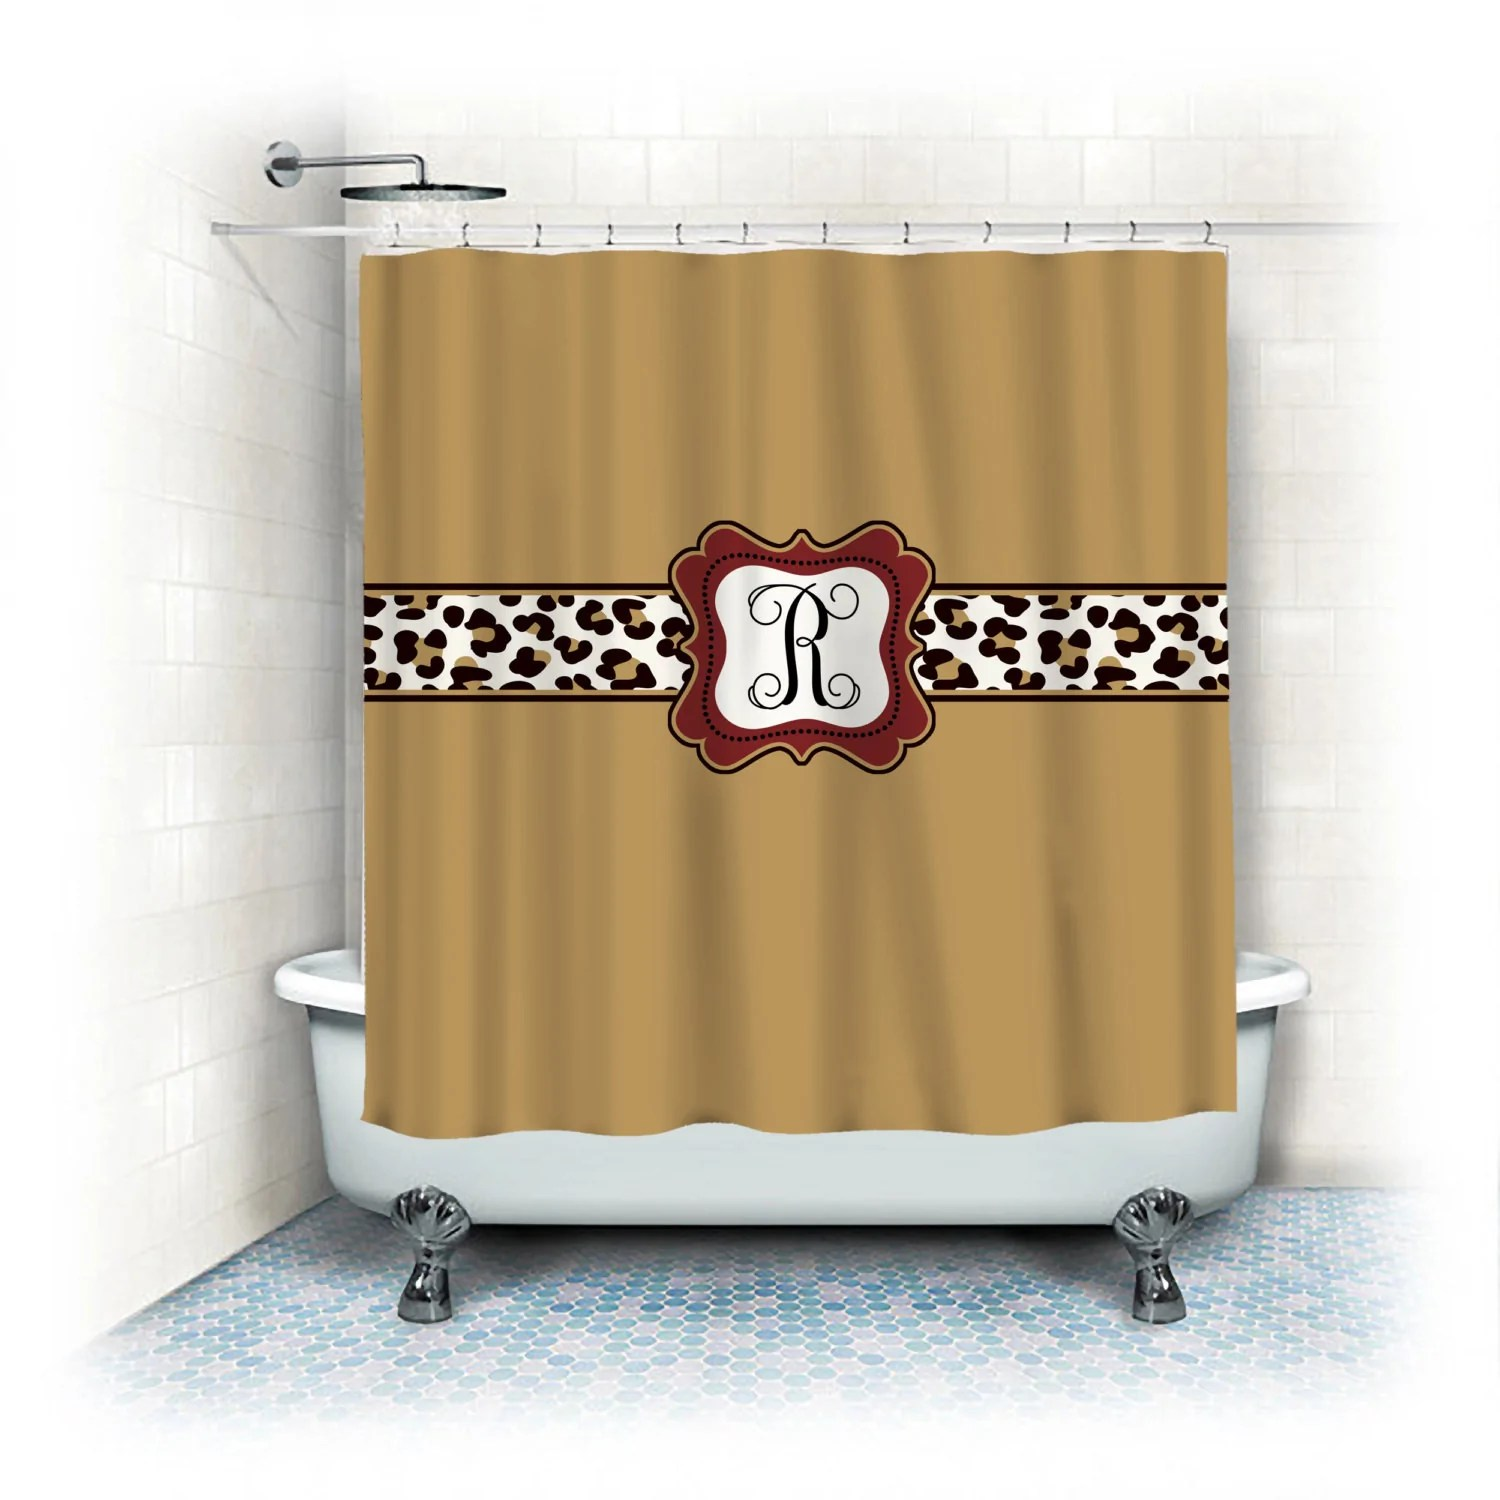 personalized shower curtain custom with your name or initials elegant gold with leopard accent